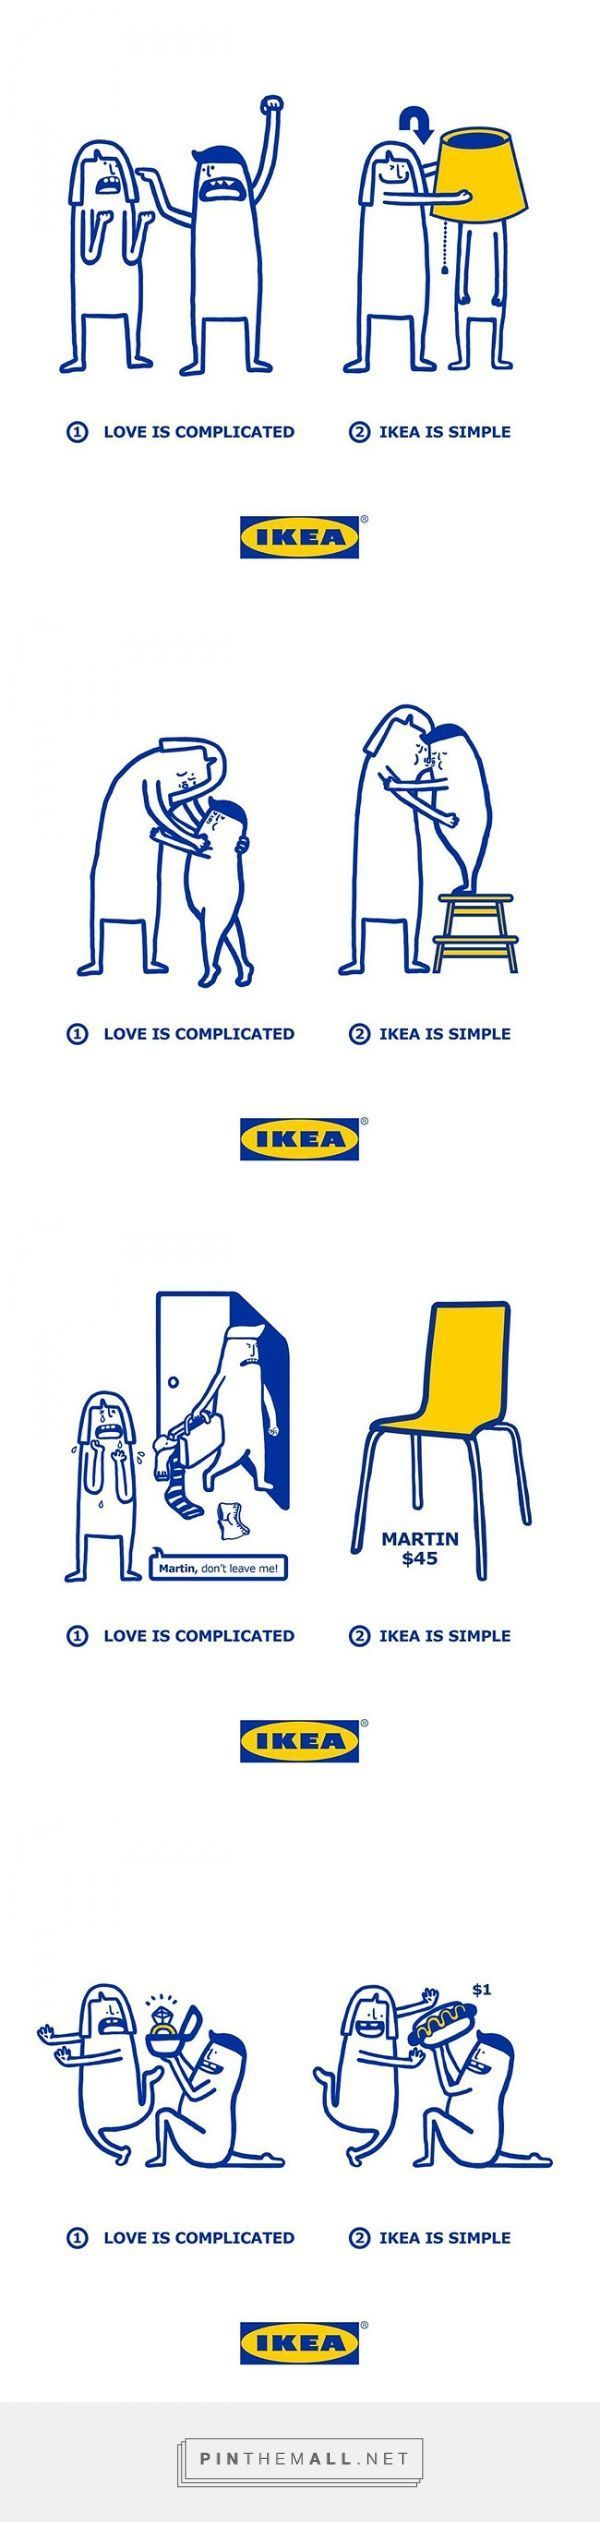 Show How Complicated Love Is Made Simpler With IKEA Products That last one with the hot dog is DEFINITELY me, lol — Cute Illustrations Show How Complicated Love Is Made Simpler With IKEA ProductsThat last one with the hot dog is DEFINITELY me, lol — Cute Illustrations Show How Complicated Love Is Made Simpler With IKEA ProductsIllustrations S...